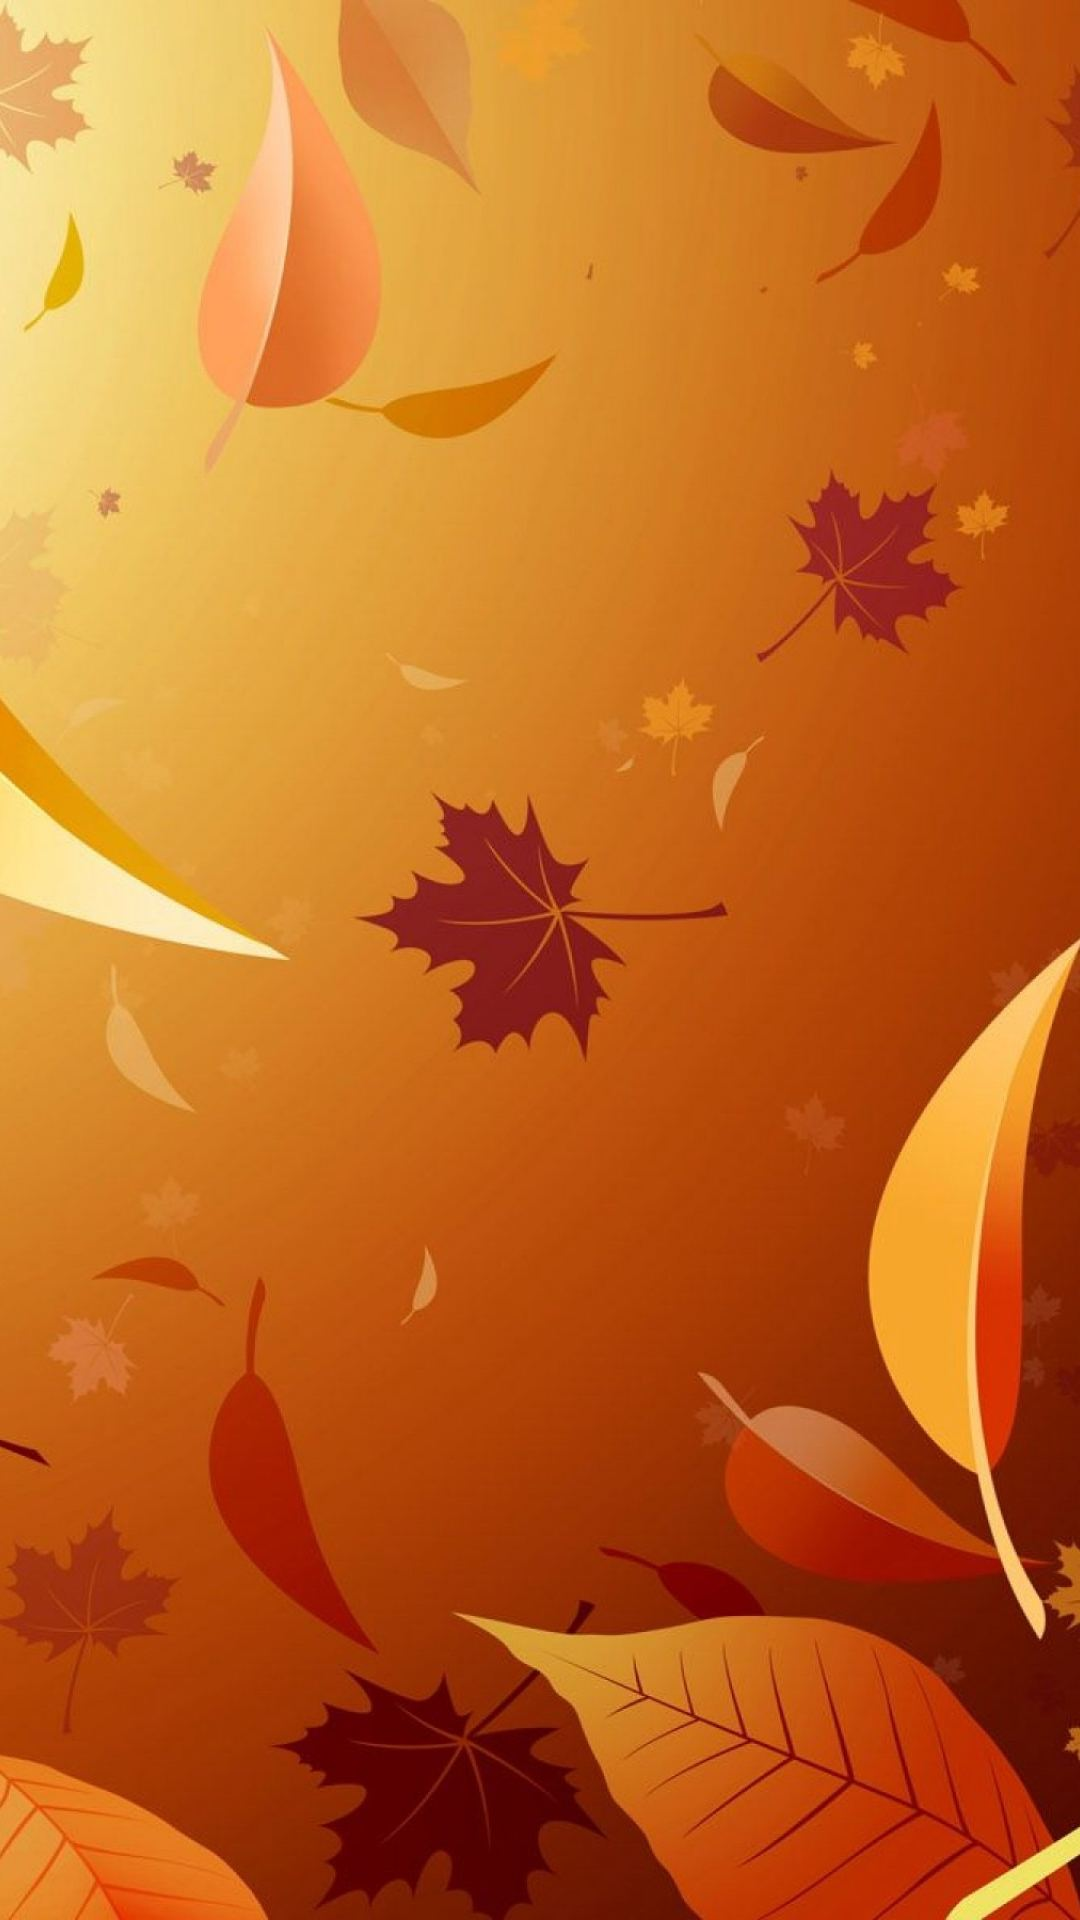 Autumn-Leaves-Backgrounds-1080x1920-Need-iPhone-S-Plus-Background-for-IPhoneSPl-wallpaper-wp3402701